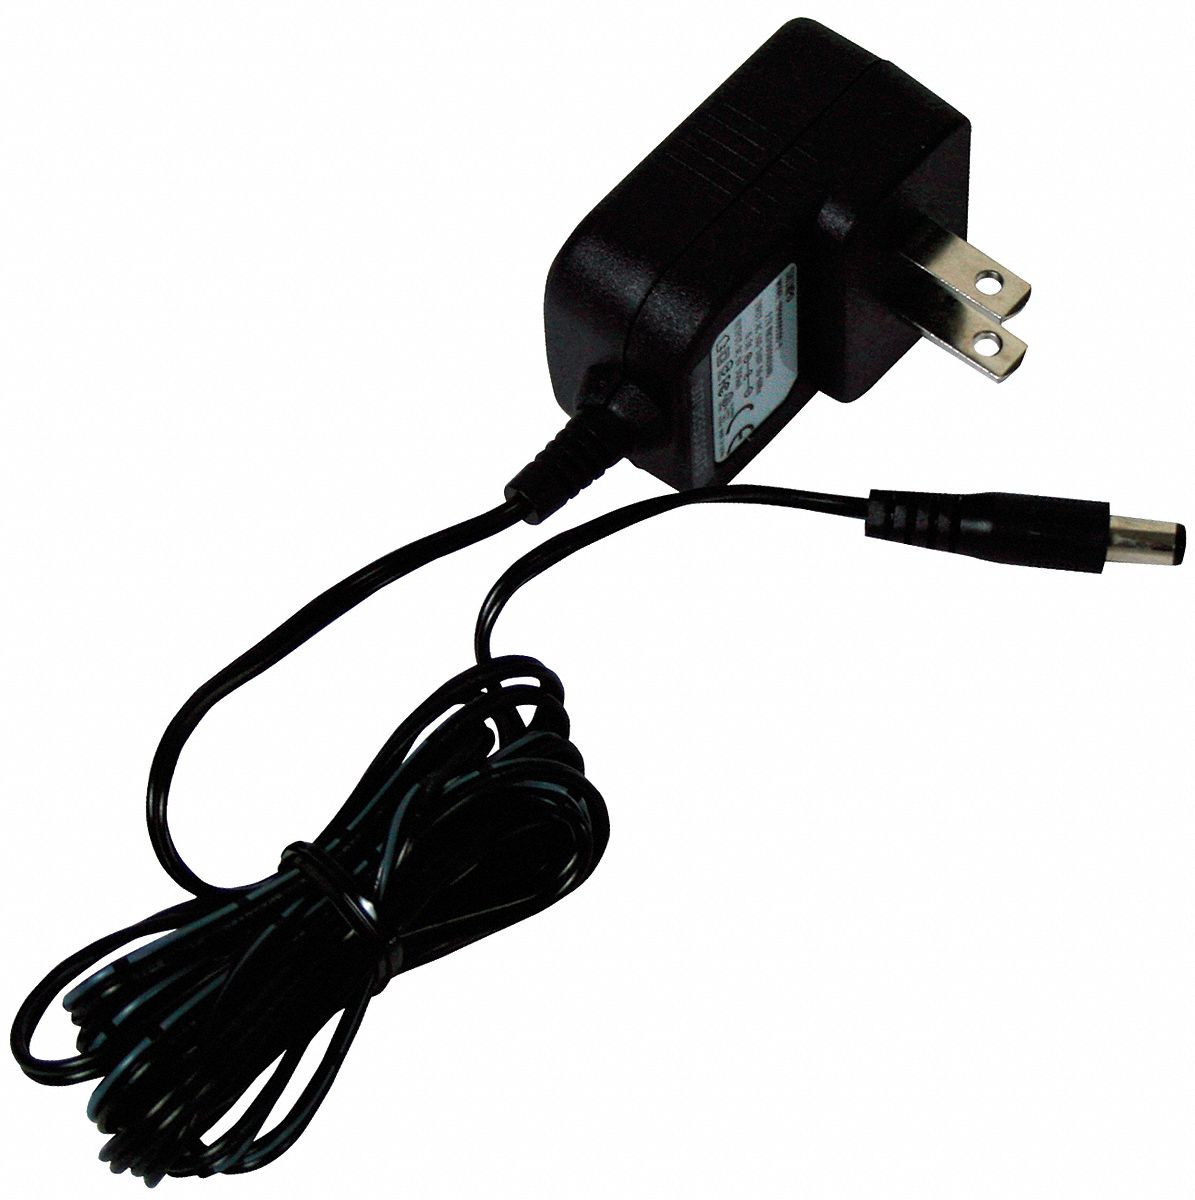 Universal Adapter/Charger, 110/220 VAC